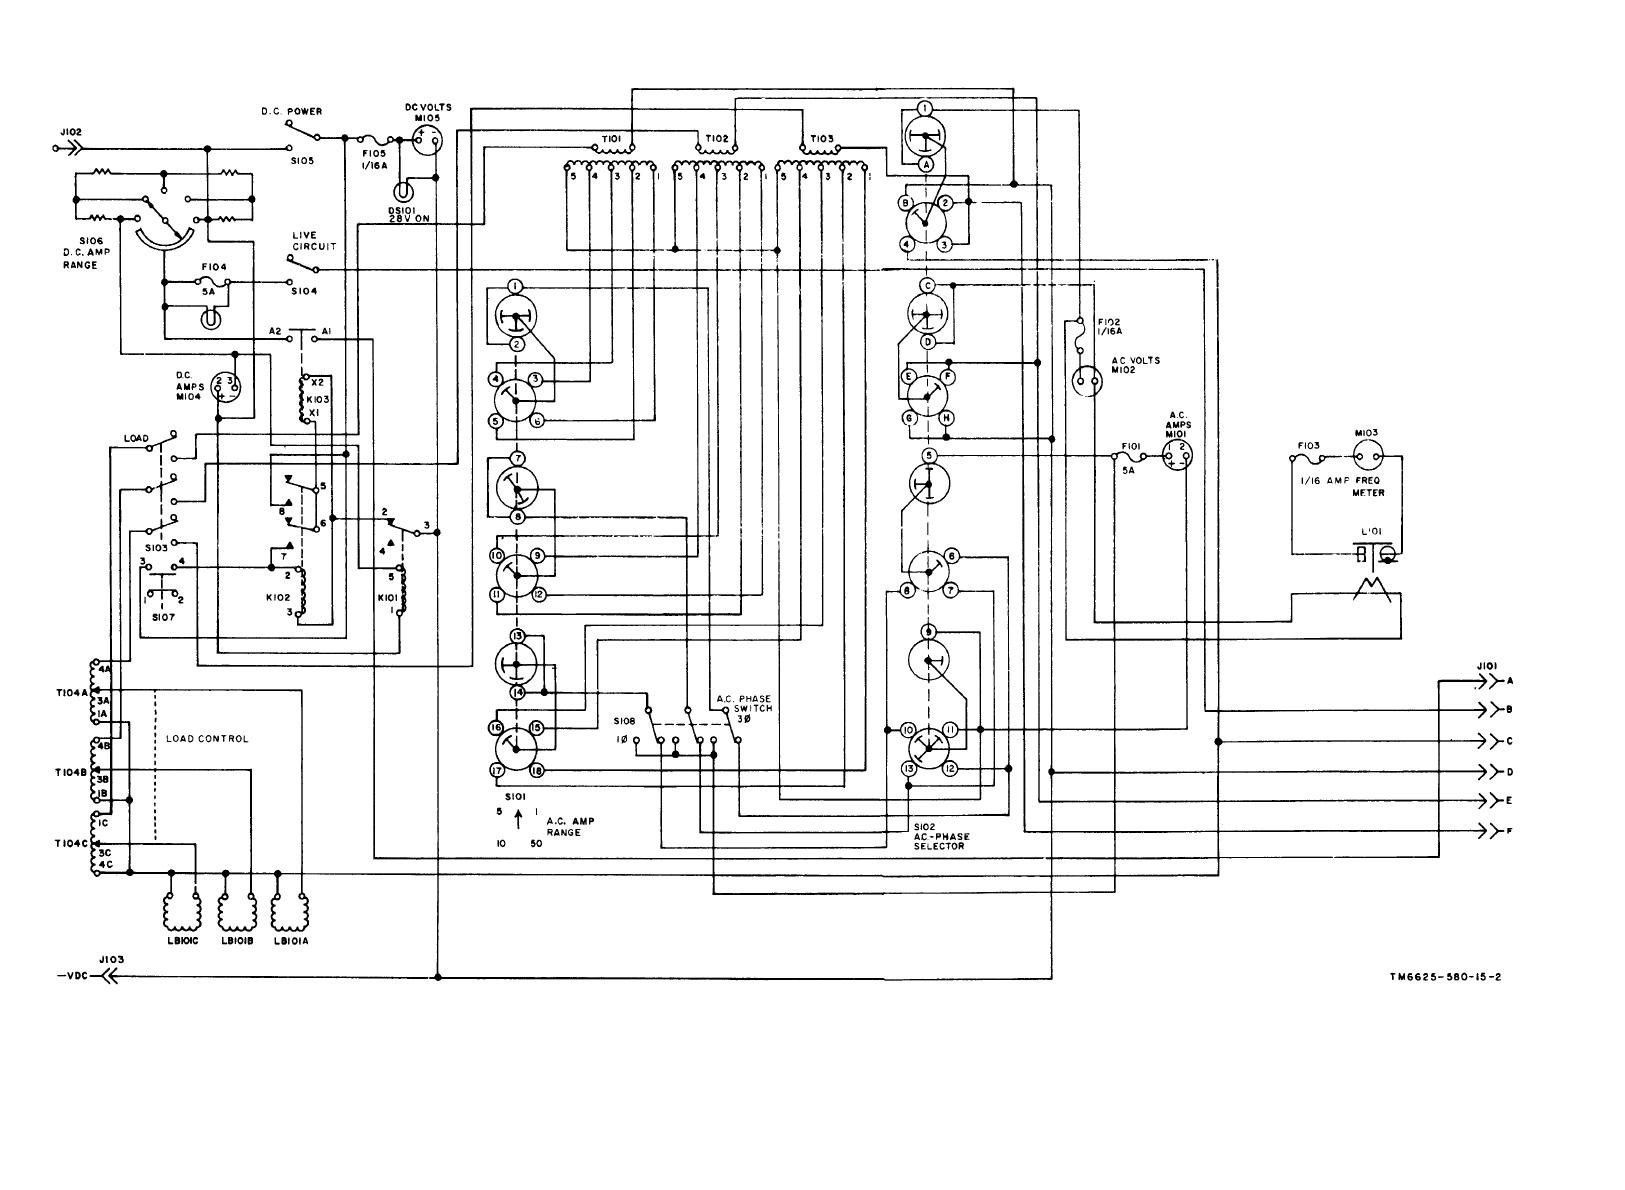 2005 Ford Five Hundred Radio Wiring Diagram